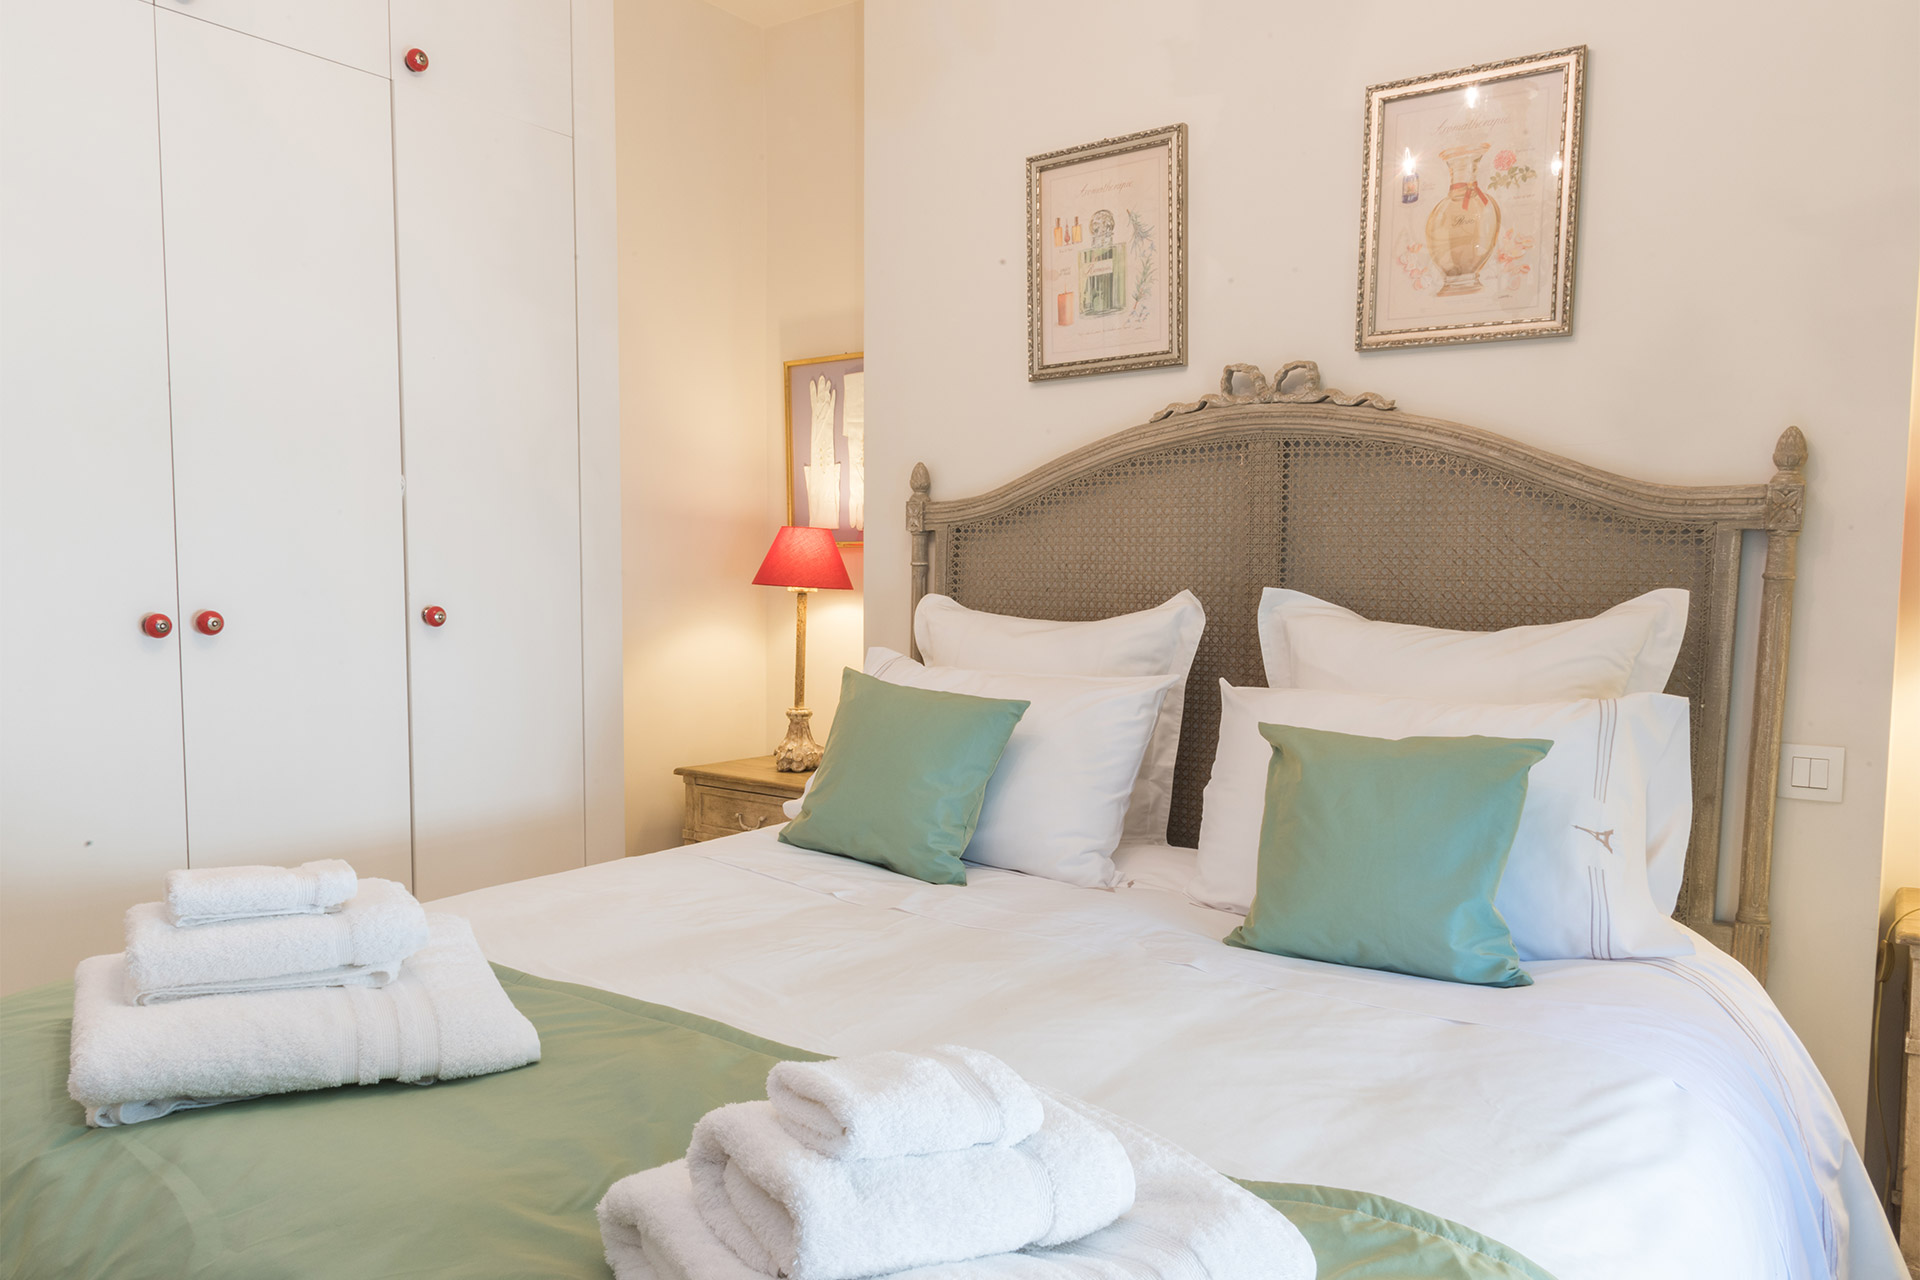 Built-in closets in the bedroom of the Calvados vacation rental offered by Paris Perfect